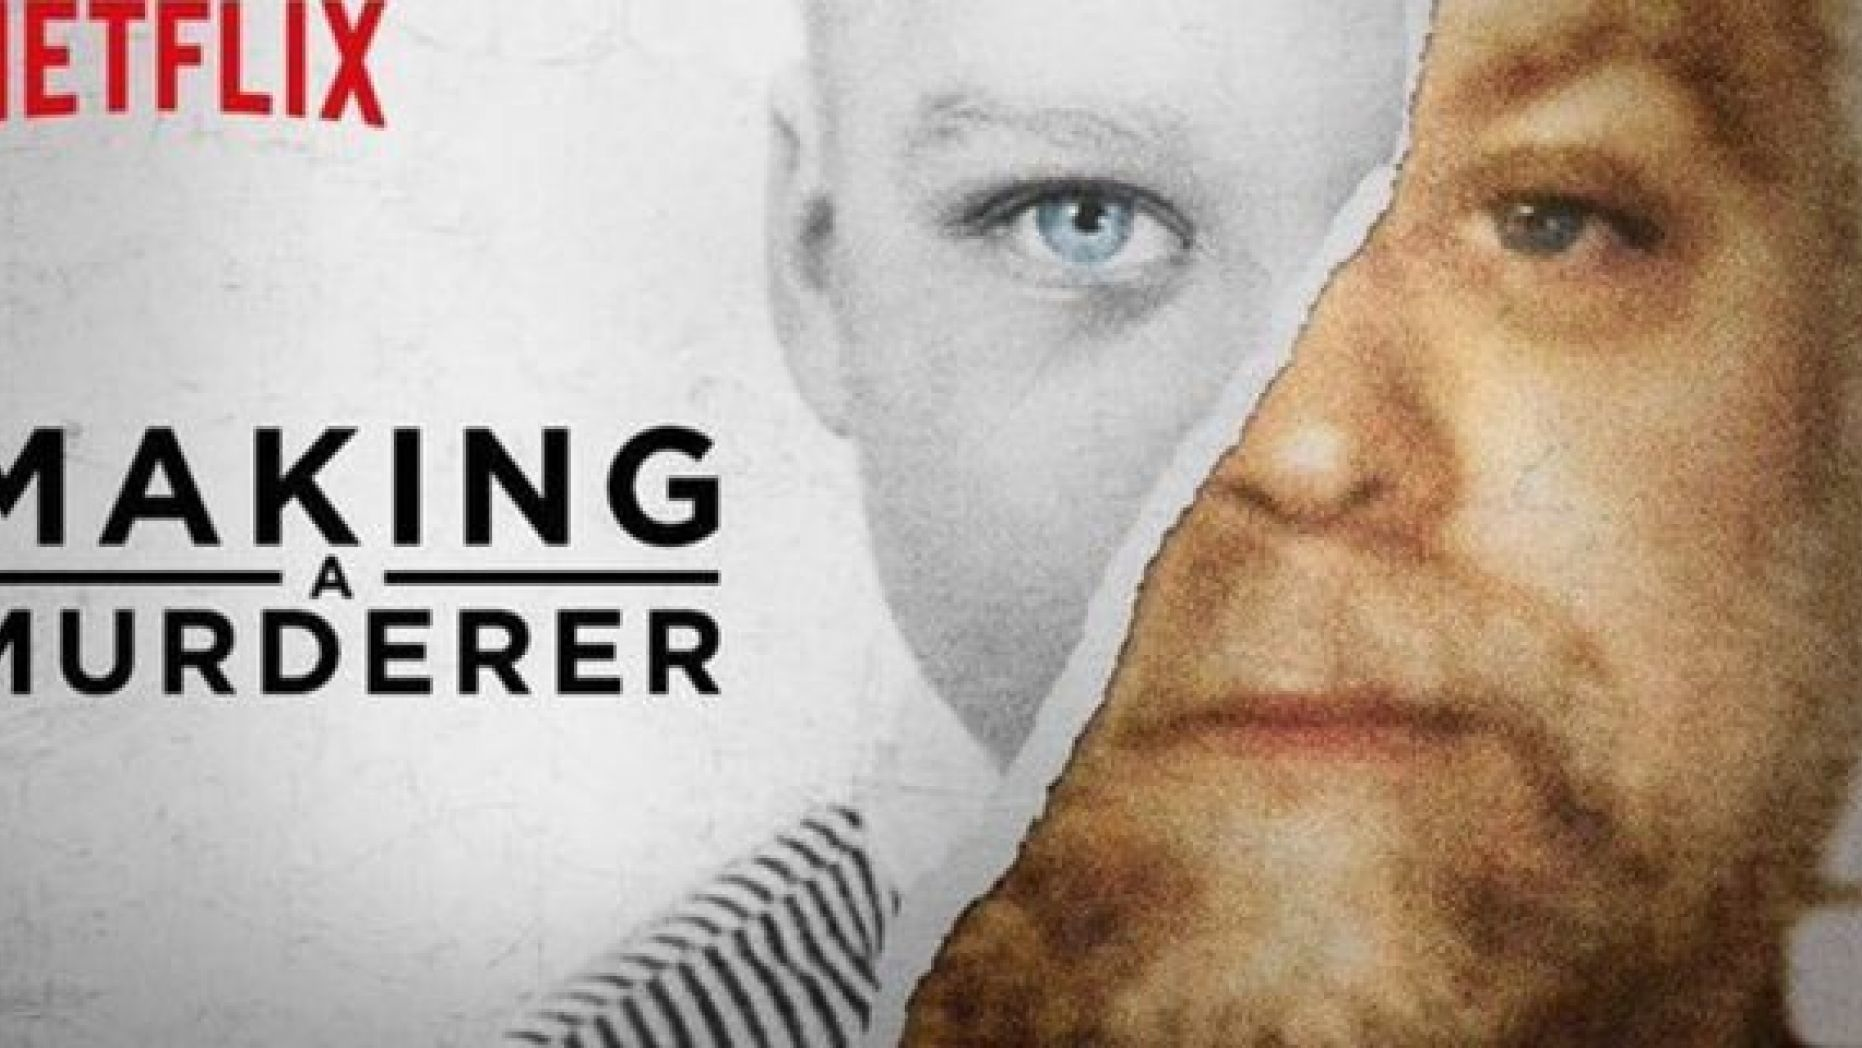 Image may contain: Netflix true crime, crime, documentary, Netflix, Making a Murderer, Photography, Portrait, Photo, Text, Poster, Advertisement, Head, Human, Person, Face